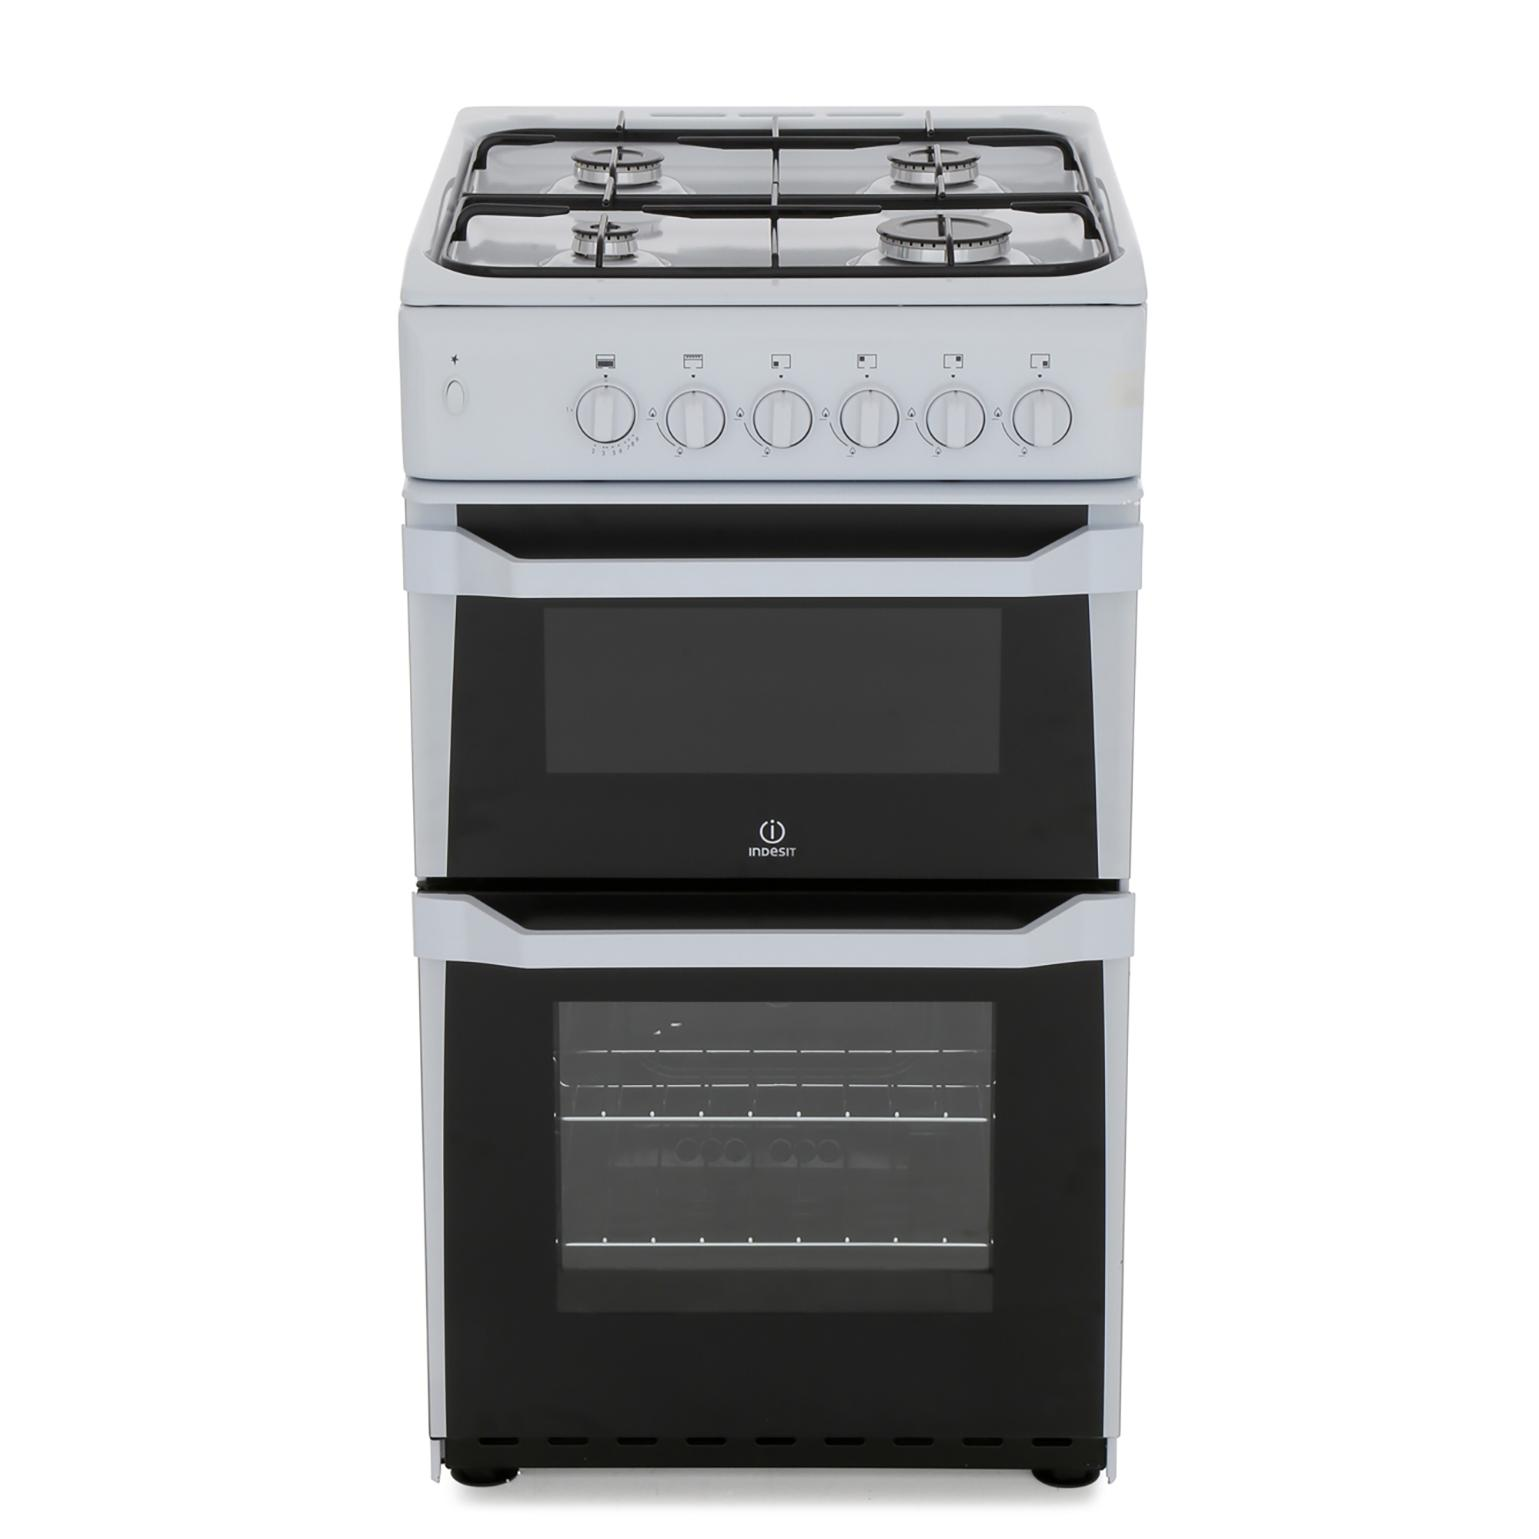 Indesit IT50GW Gas Cooker Separate Grill